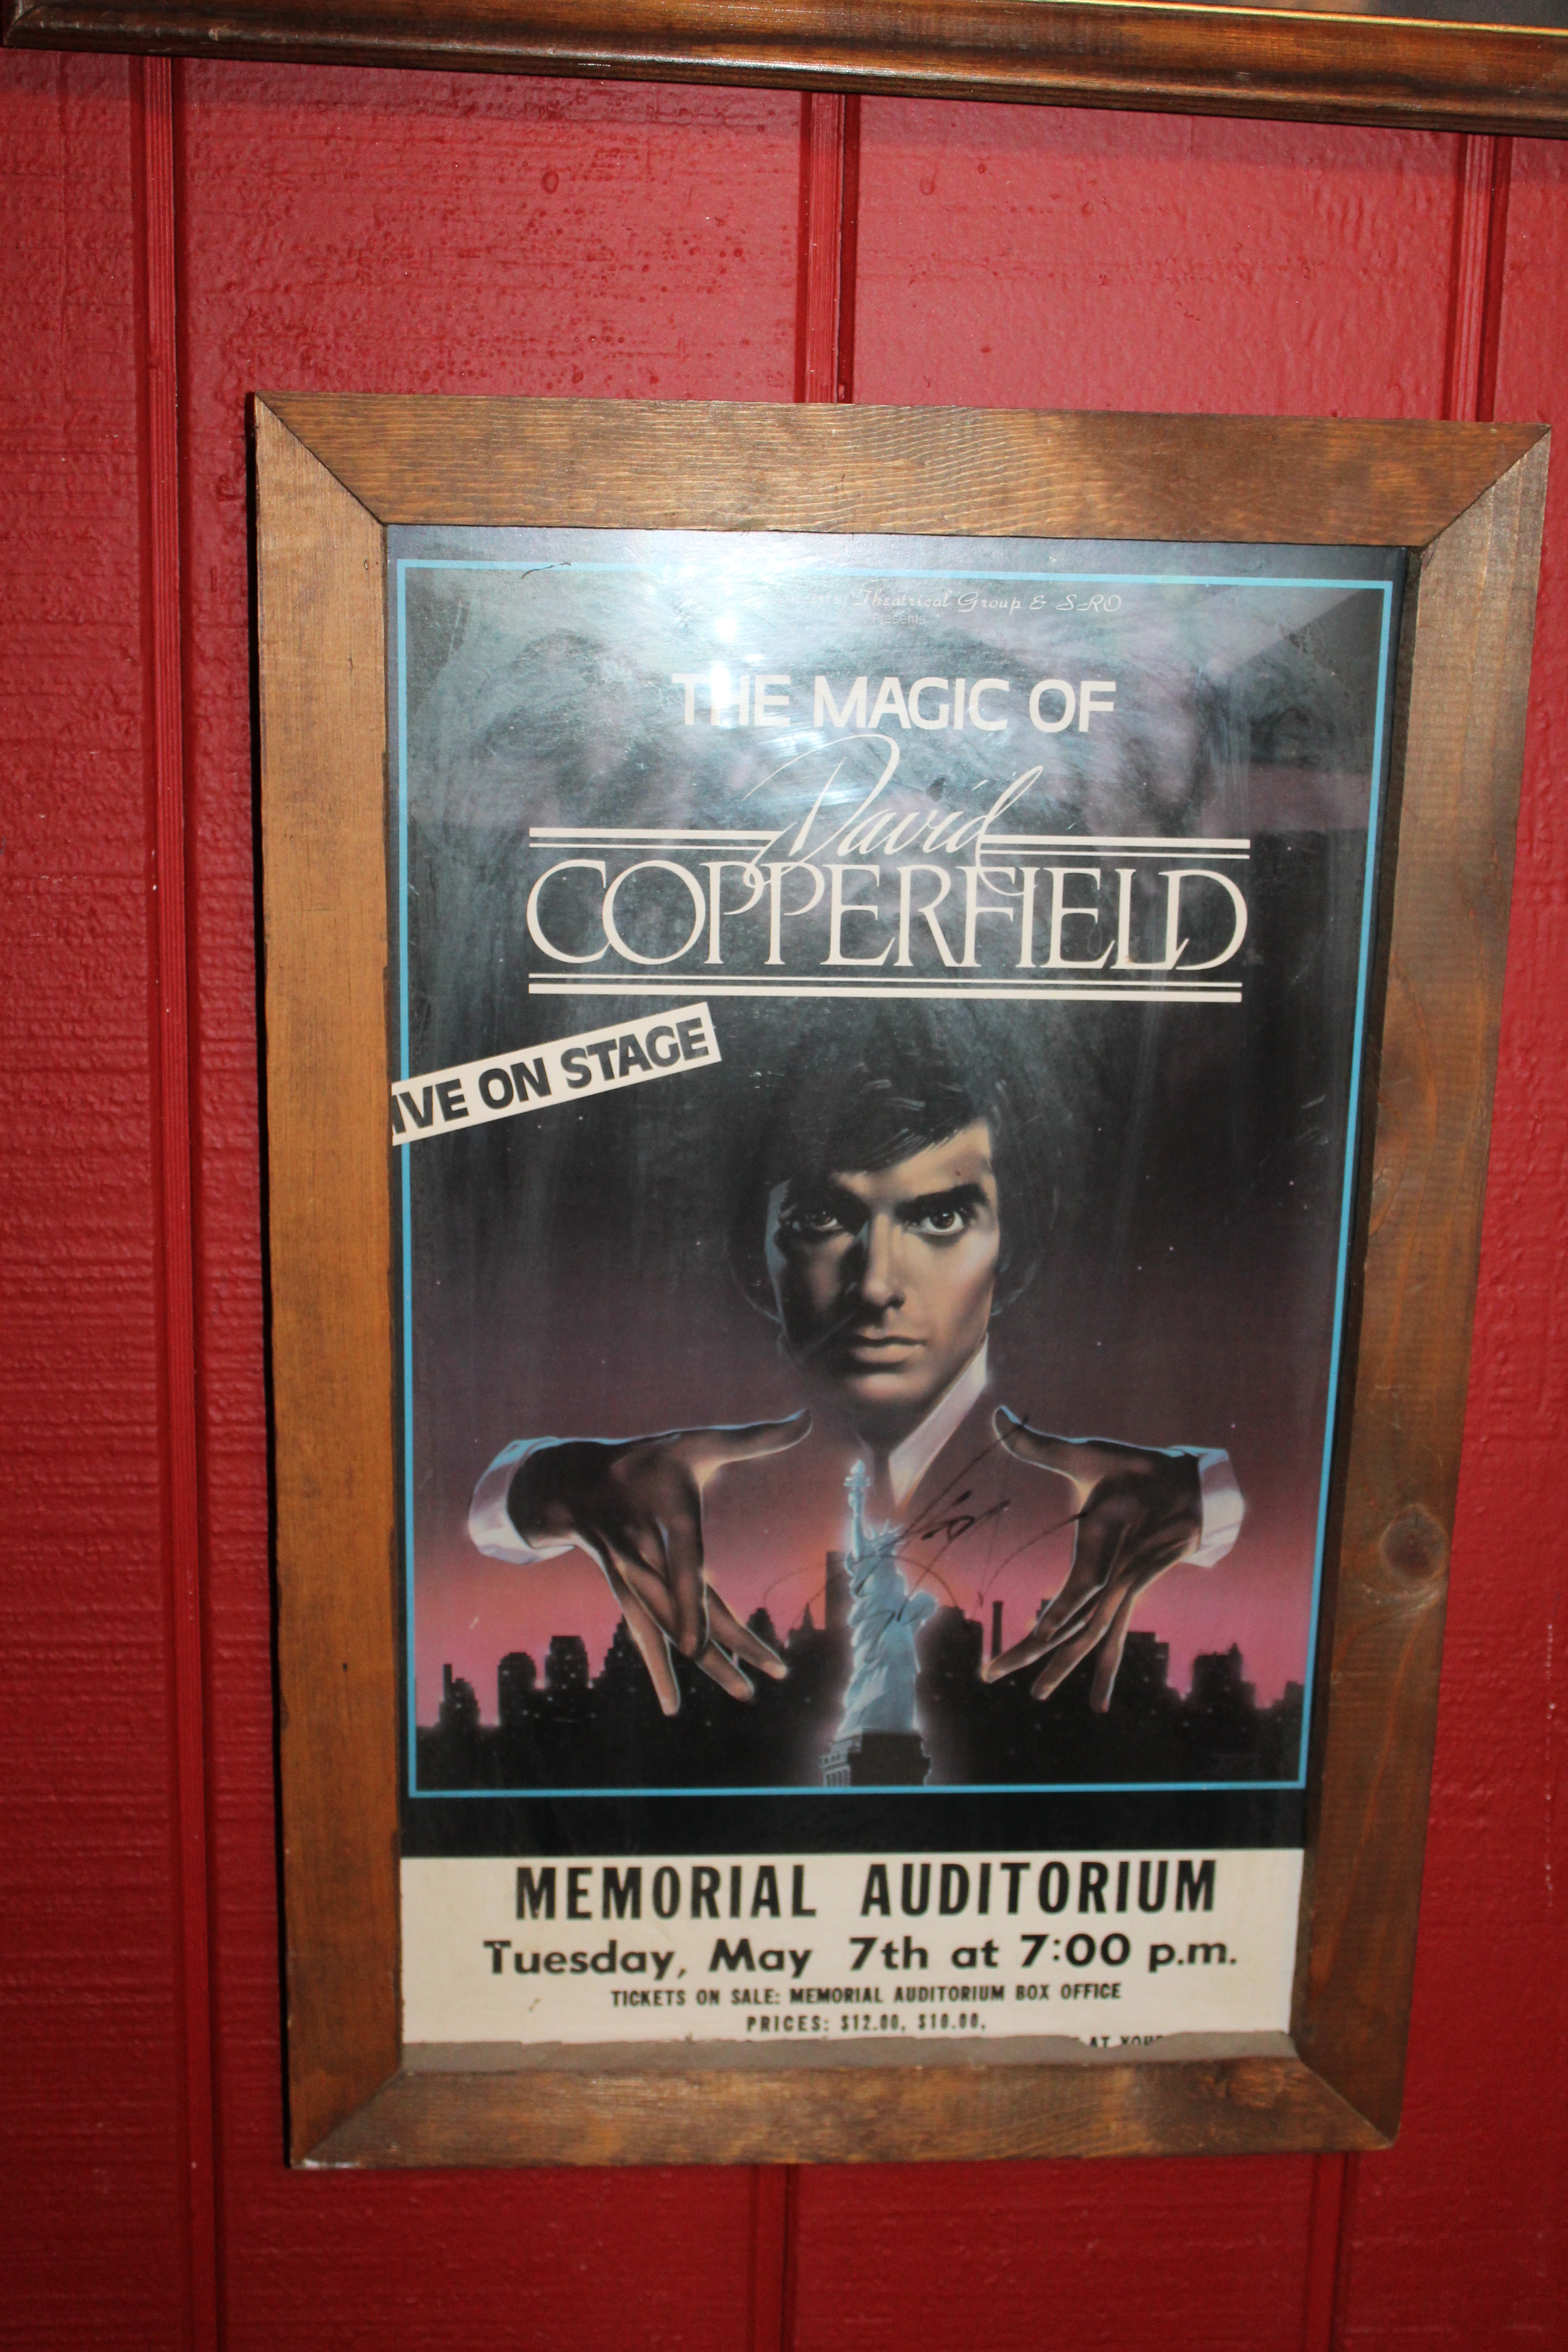 https://0201.nccdn.net/1_2/000/000/0cb/426/David-Copperfield-Pic.JPG